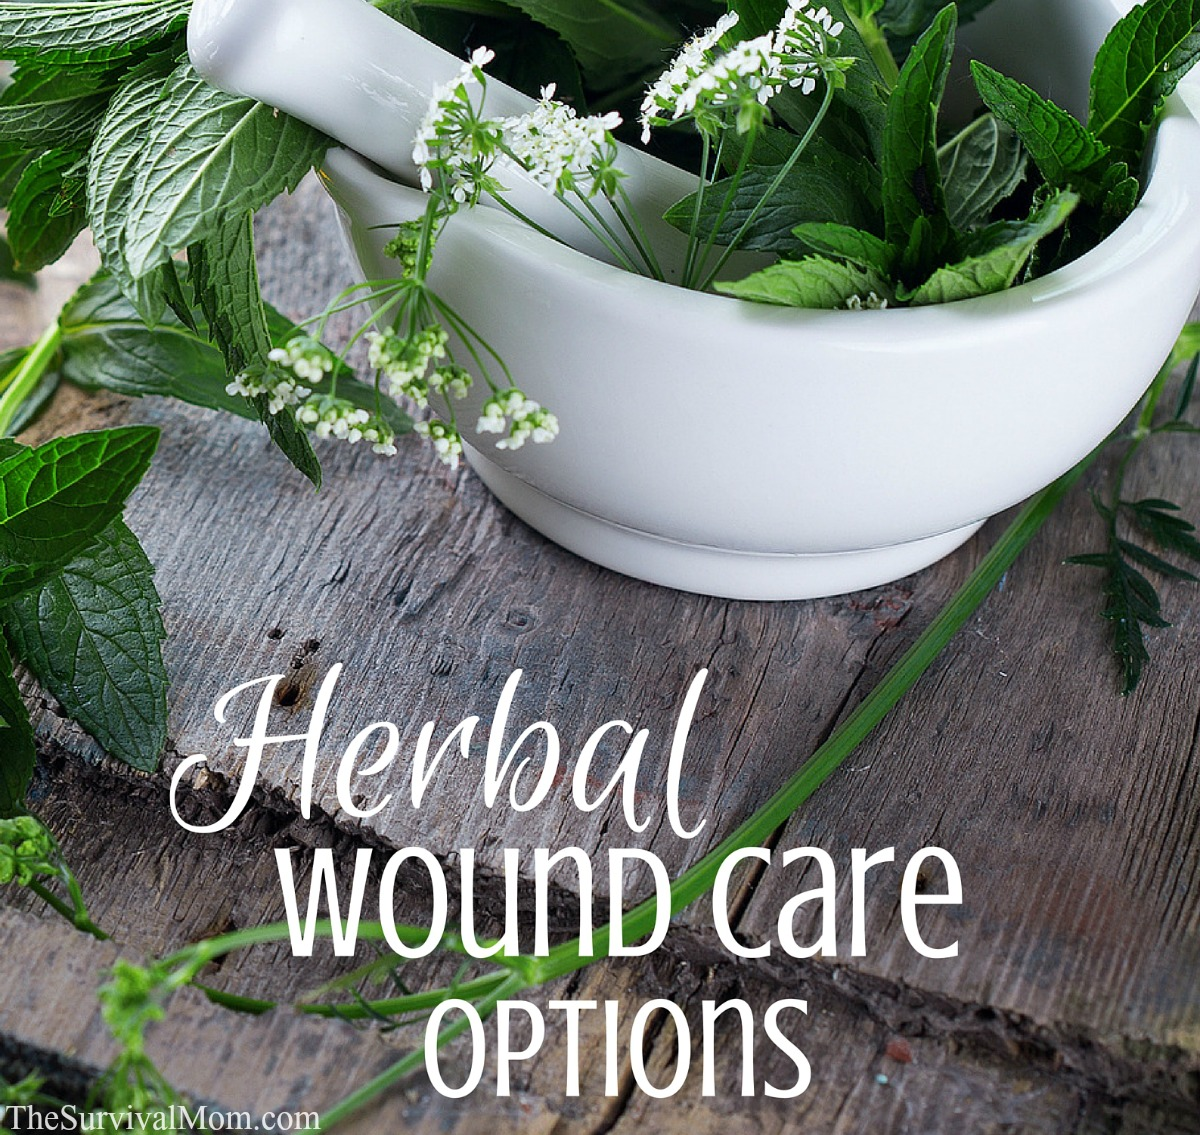 Herbal wound care FB size